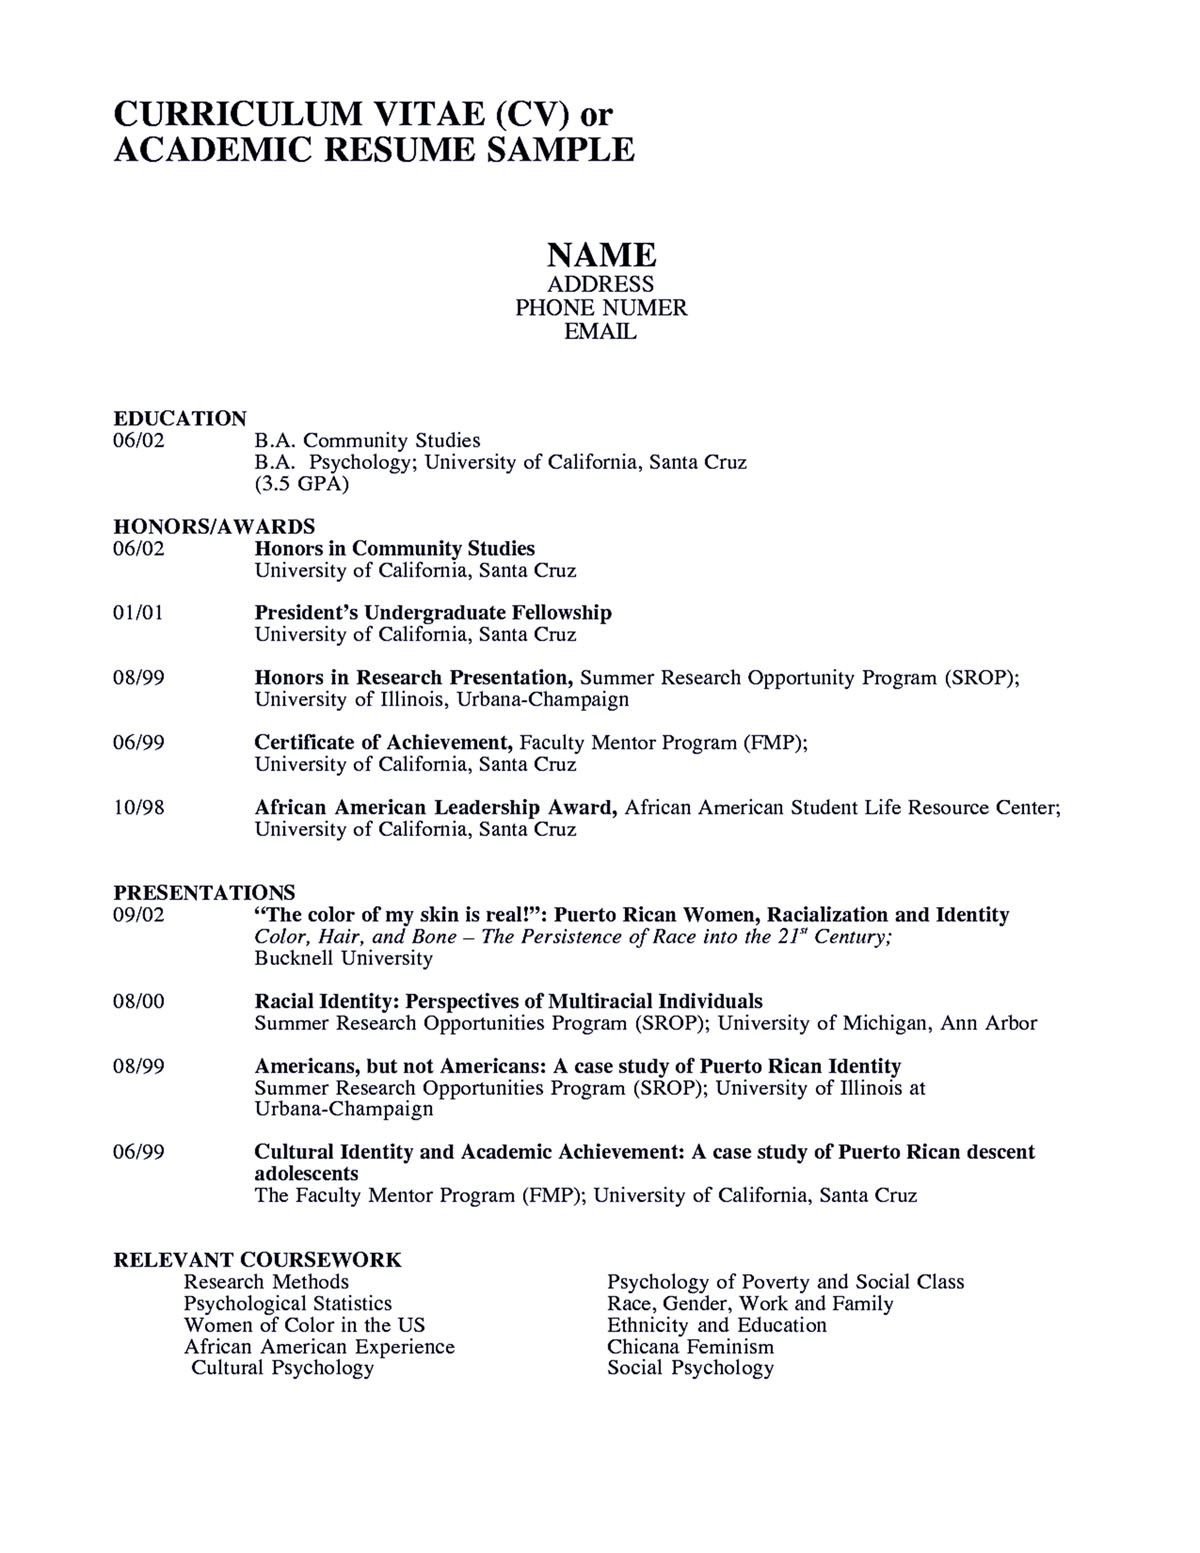 Academic Resume Examples Academic Resume Sample Shows You How To Make Academic Resume